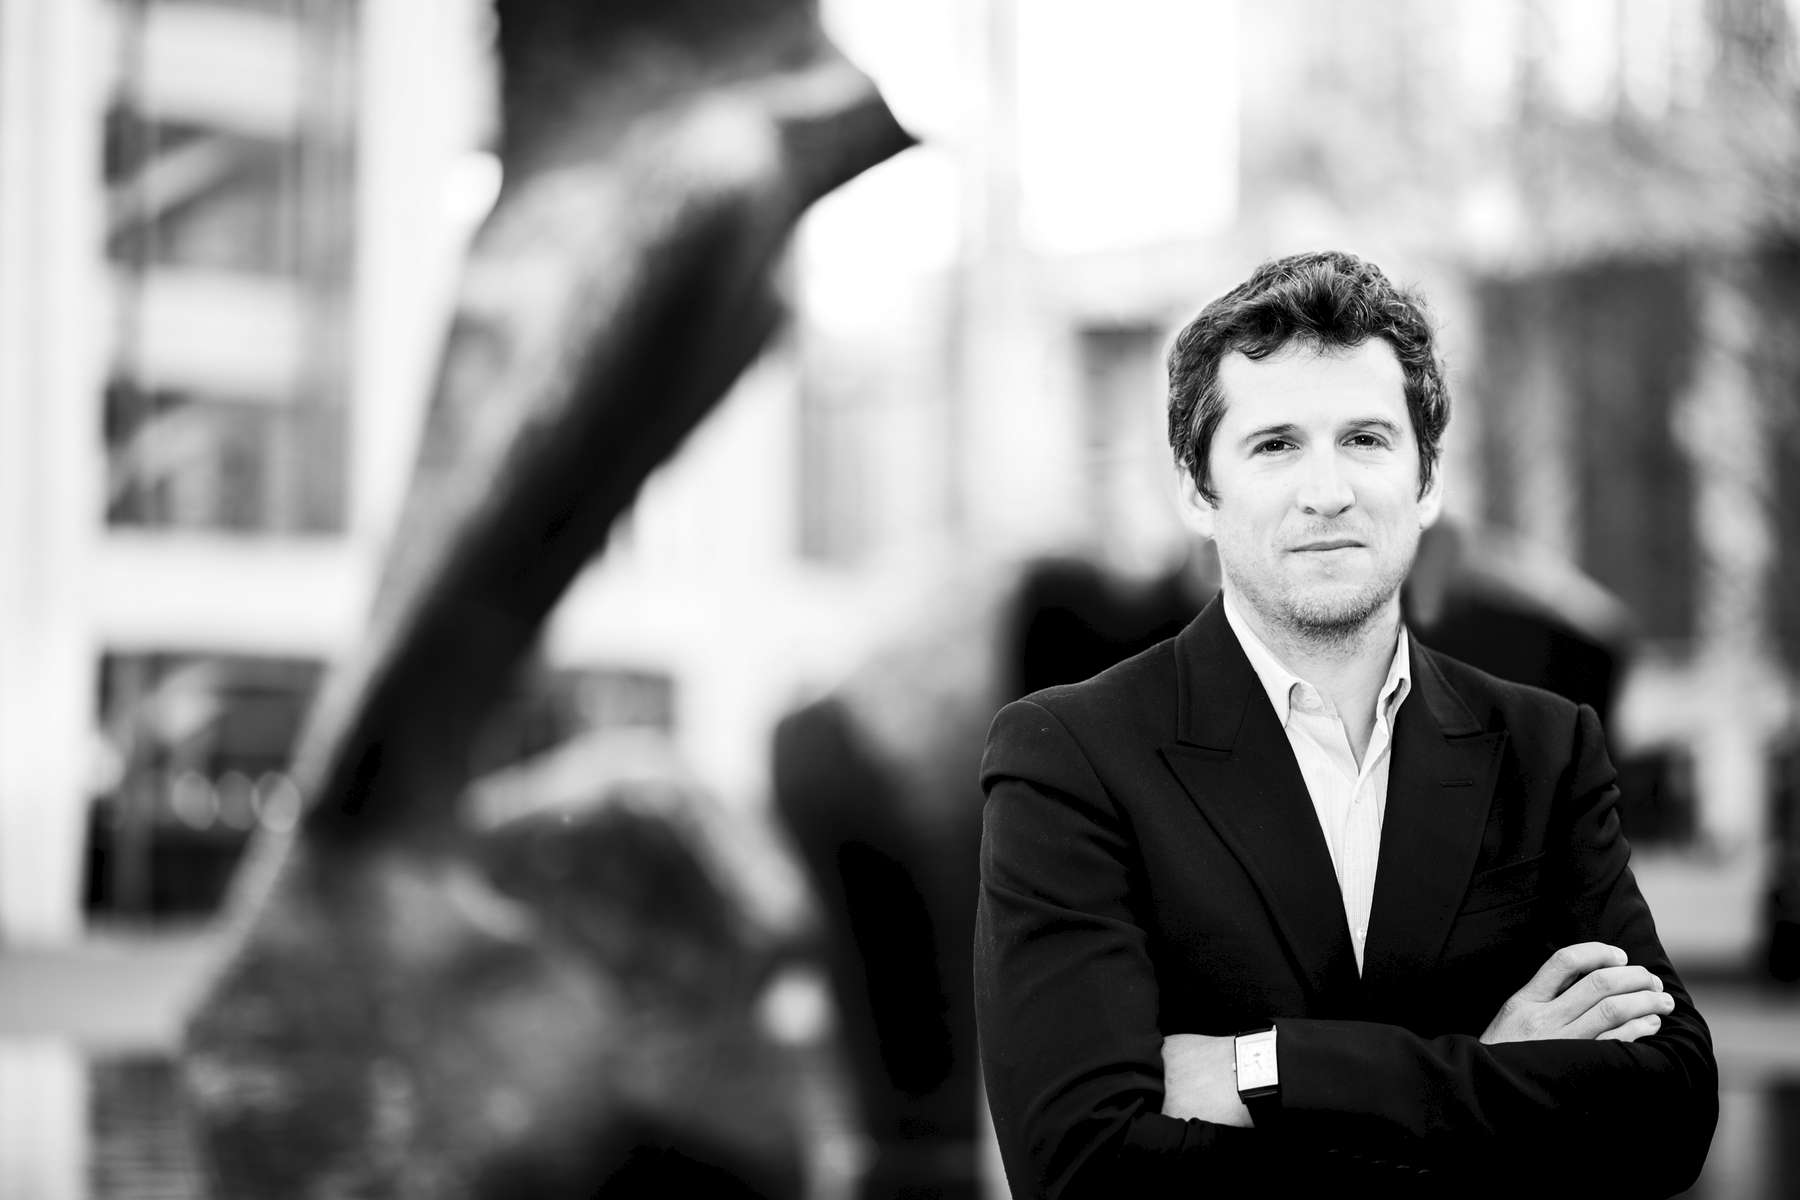 Filmmaker and actor Guillaume Canet